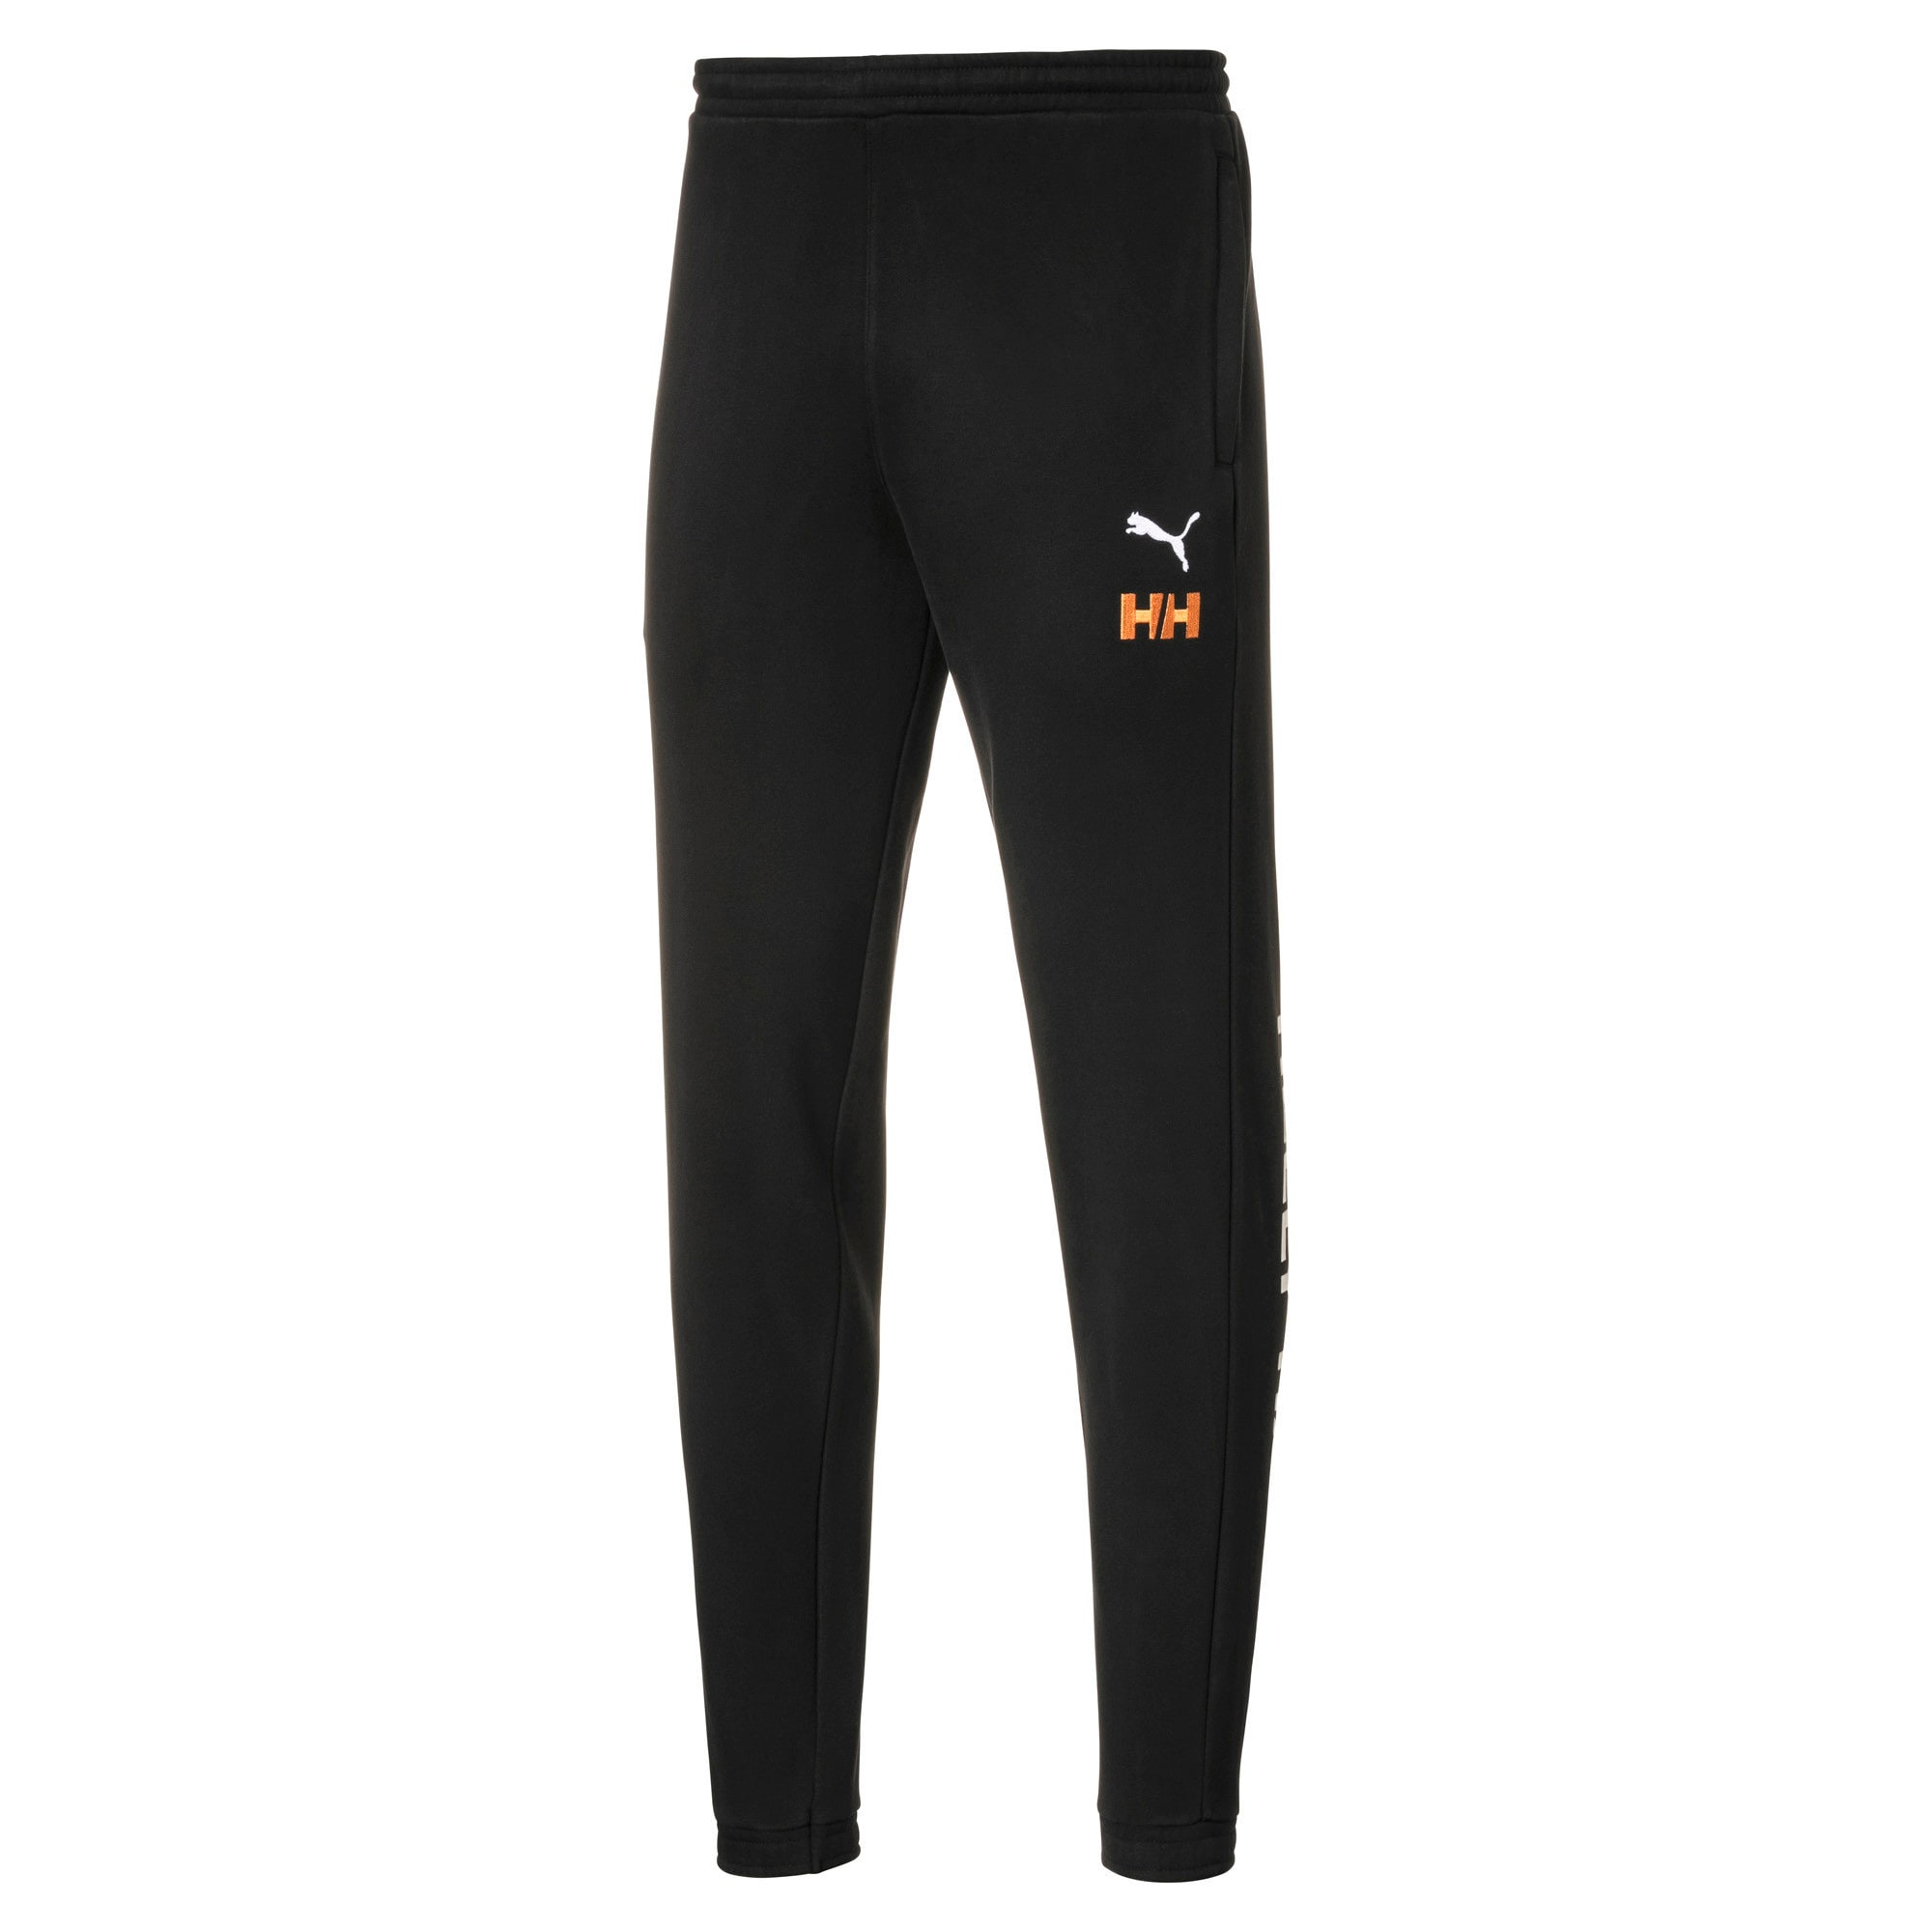 Thumbnail 1 of Pantalon de survêtement en polaire PUMA x HELLY HANSEN, Puma Black, medium